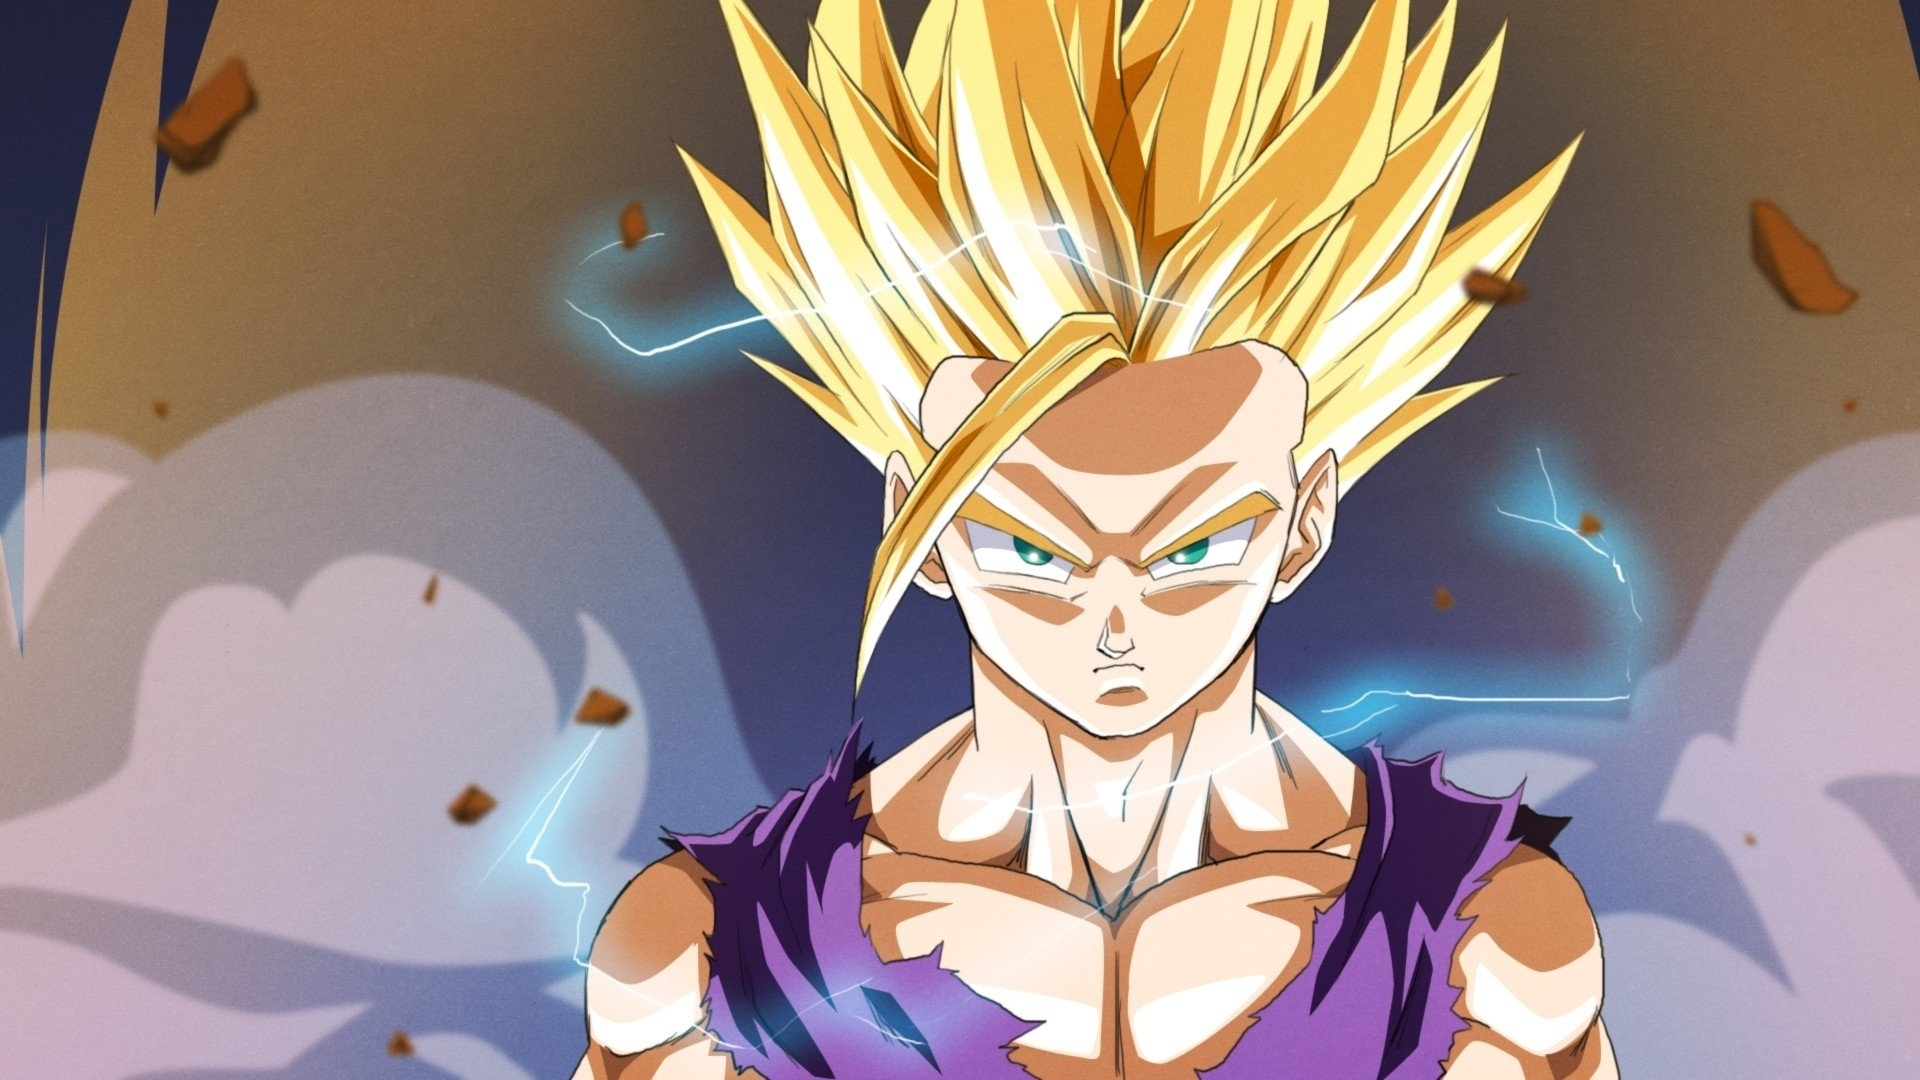 138 gohan (dragon ball) hd wallpapers | background images